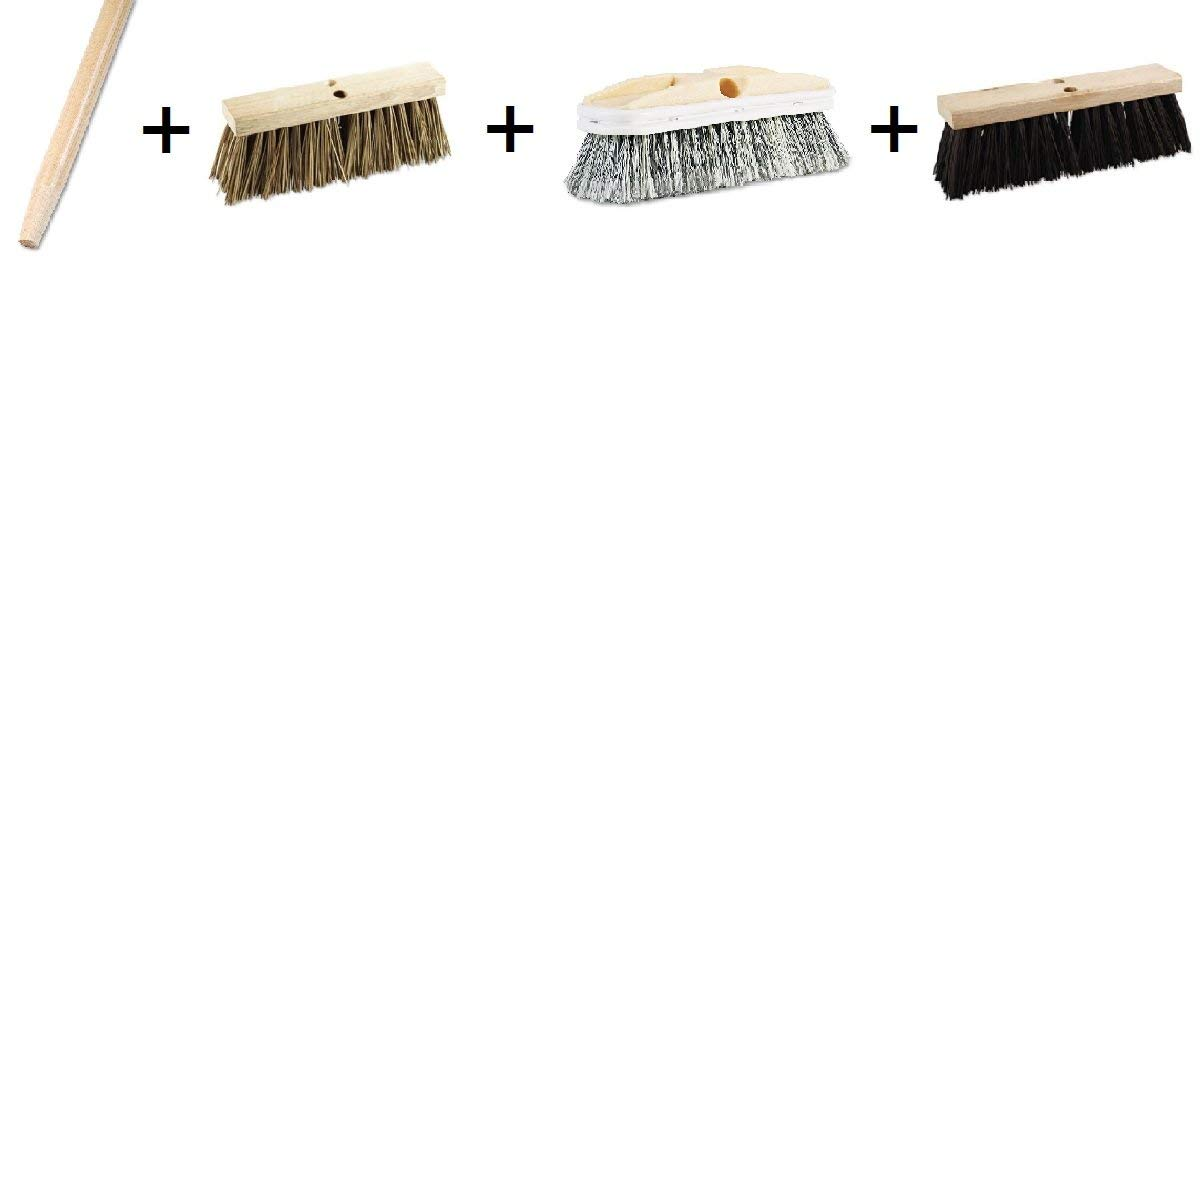 "60"" Handle with 3 Brush Set - Tapered End Broom Handle, Lacquered Hardwood, 1 1/8 Dia. x 60 Long, Polystyrene Vehicle Brush w/Vinyl Bumper, 2 1/2 Bristles, 10"" Brush, Street Broom Head, Polypropylene"